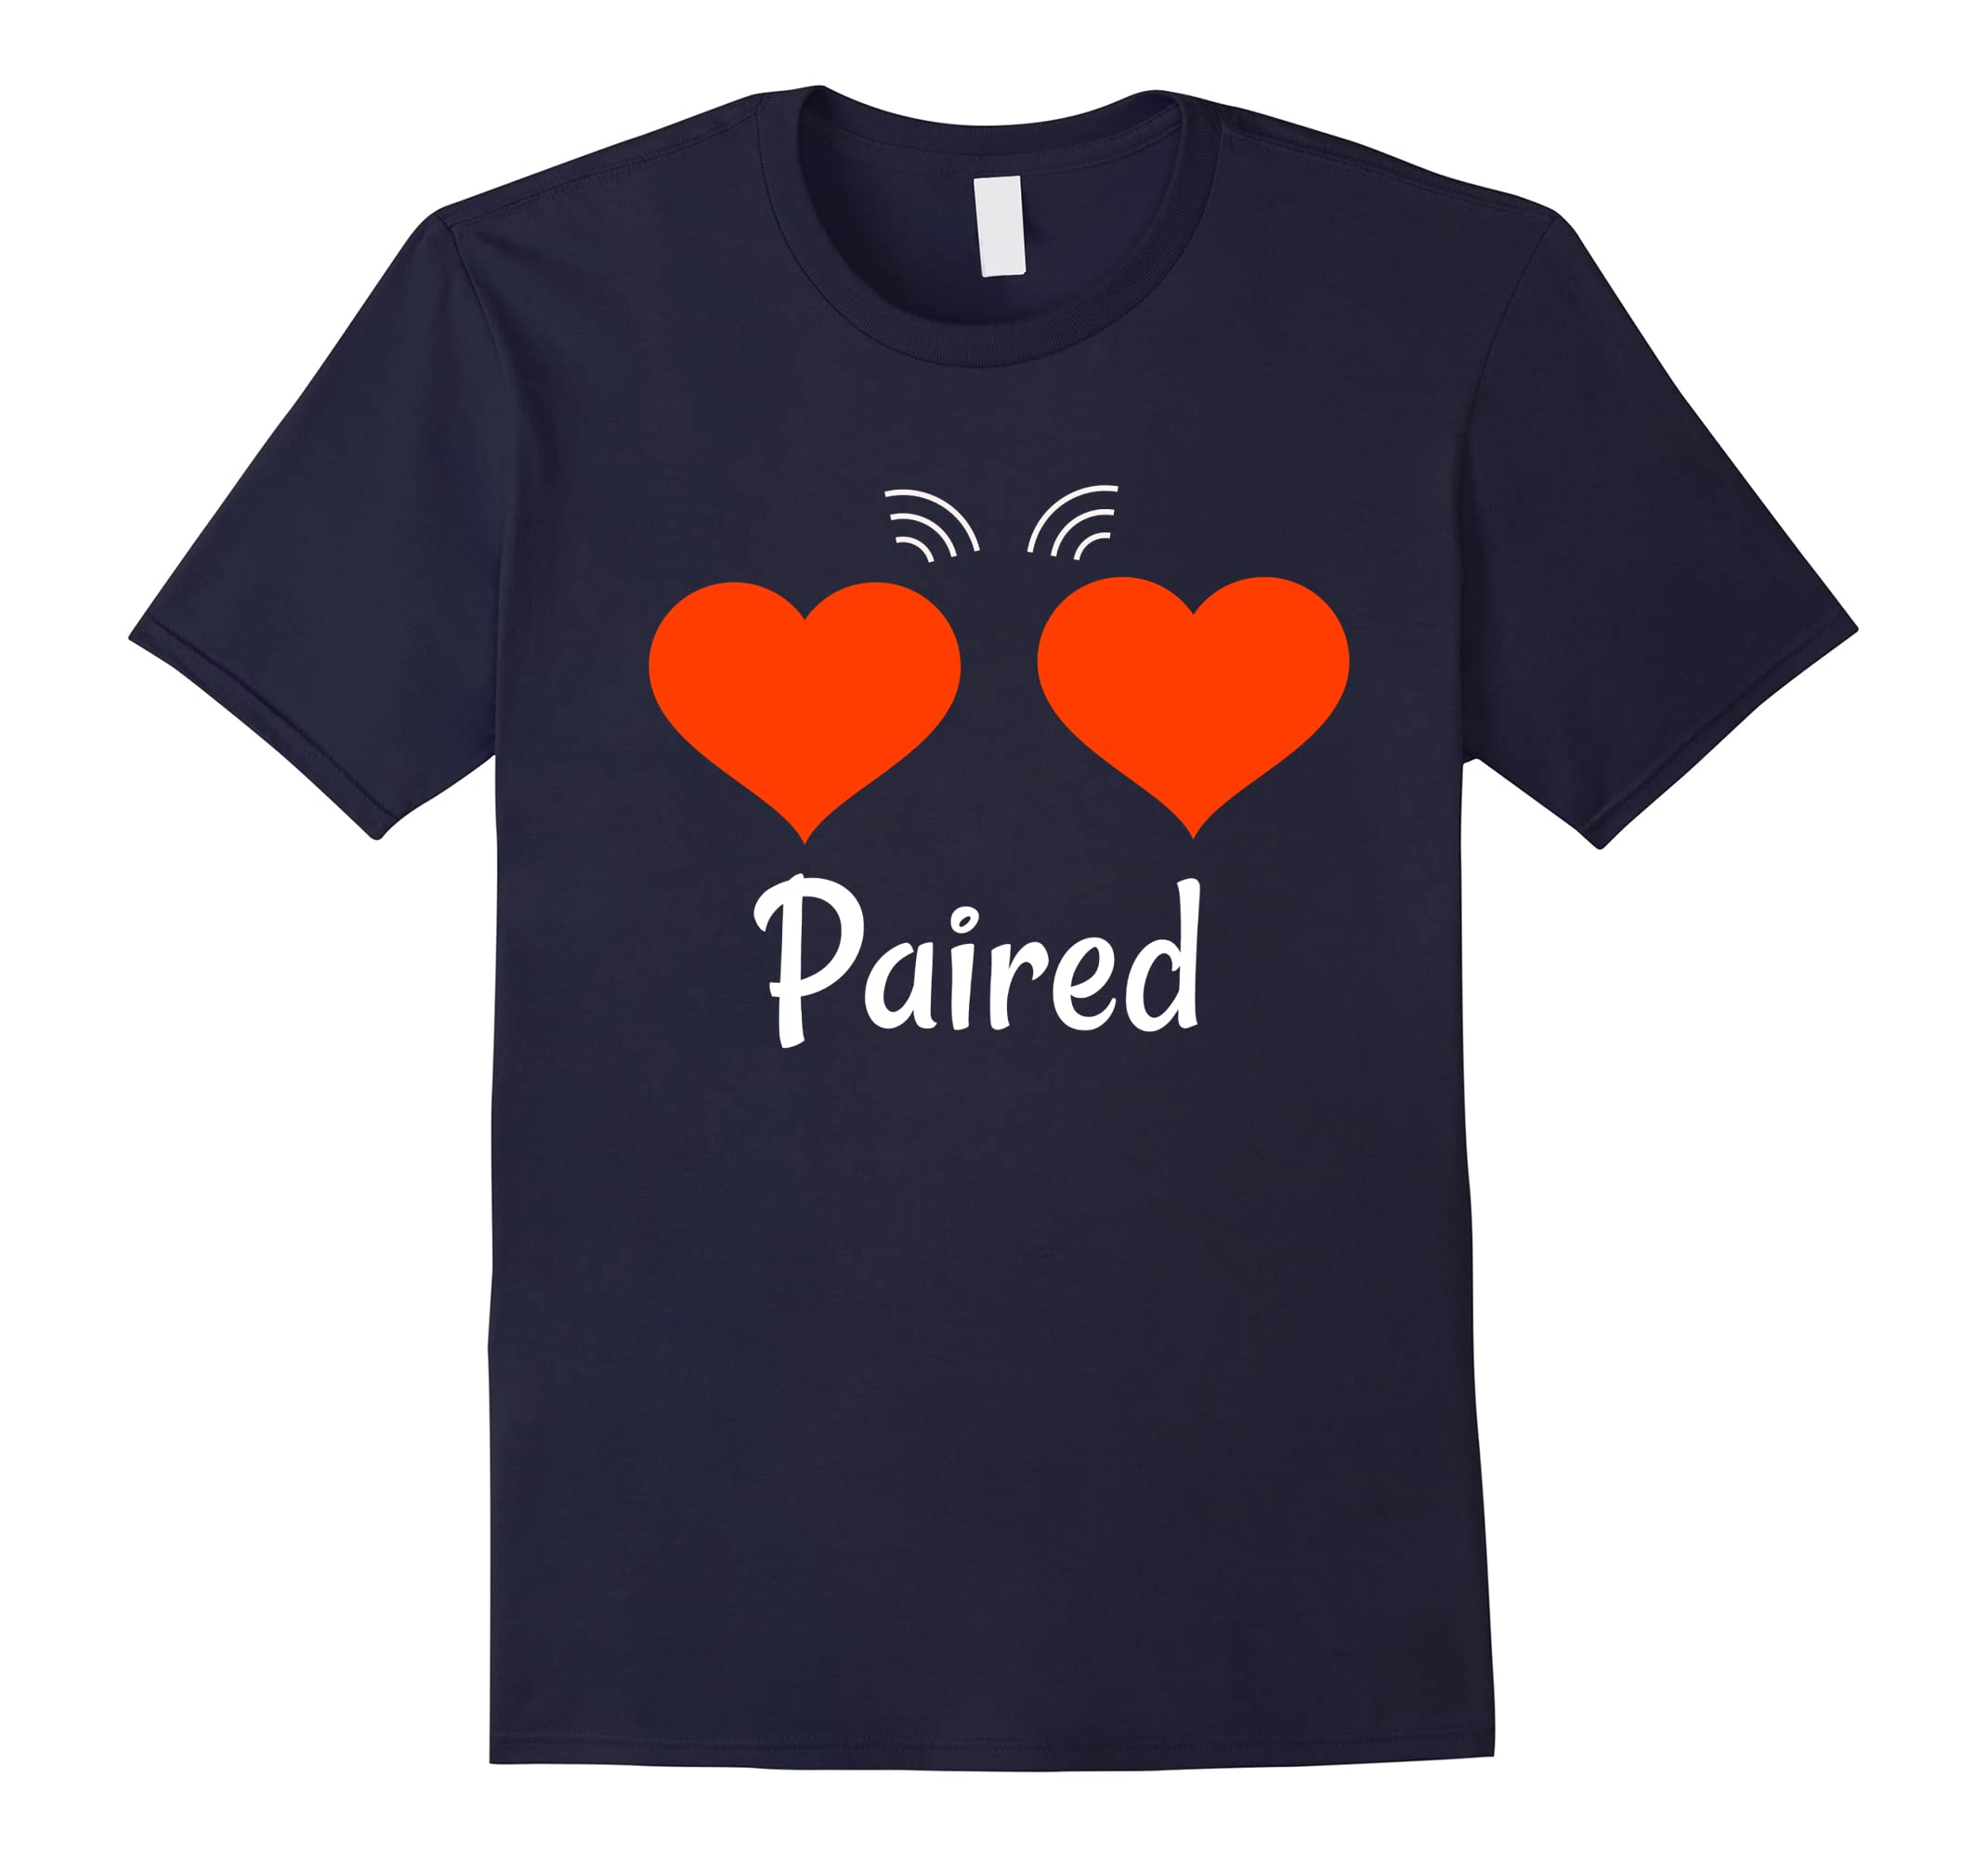 Couples Paired Hearts Valentine's Day T-Shirt-ah my shirt one gift